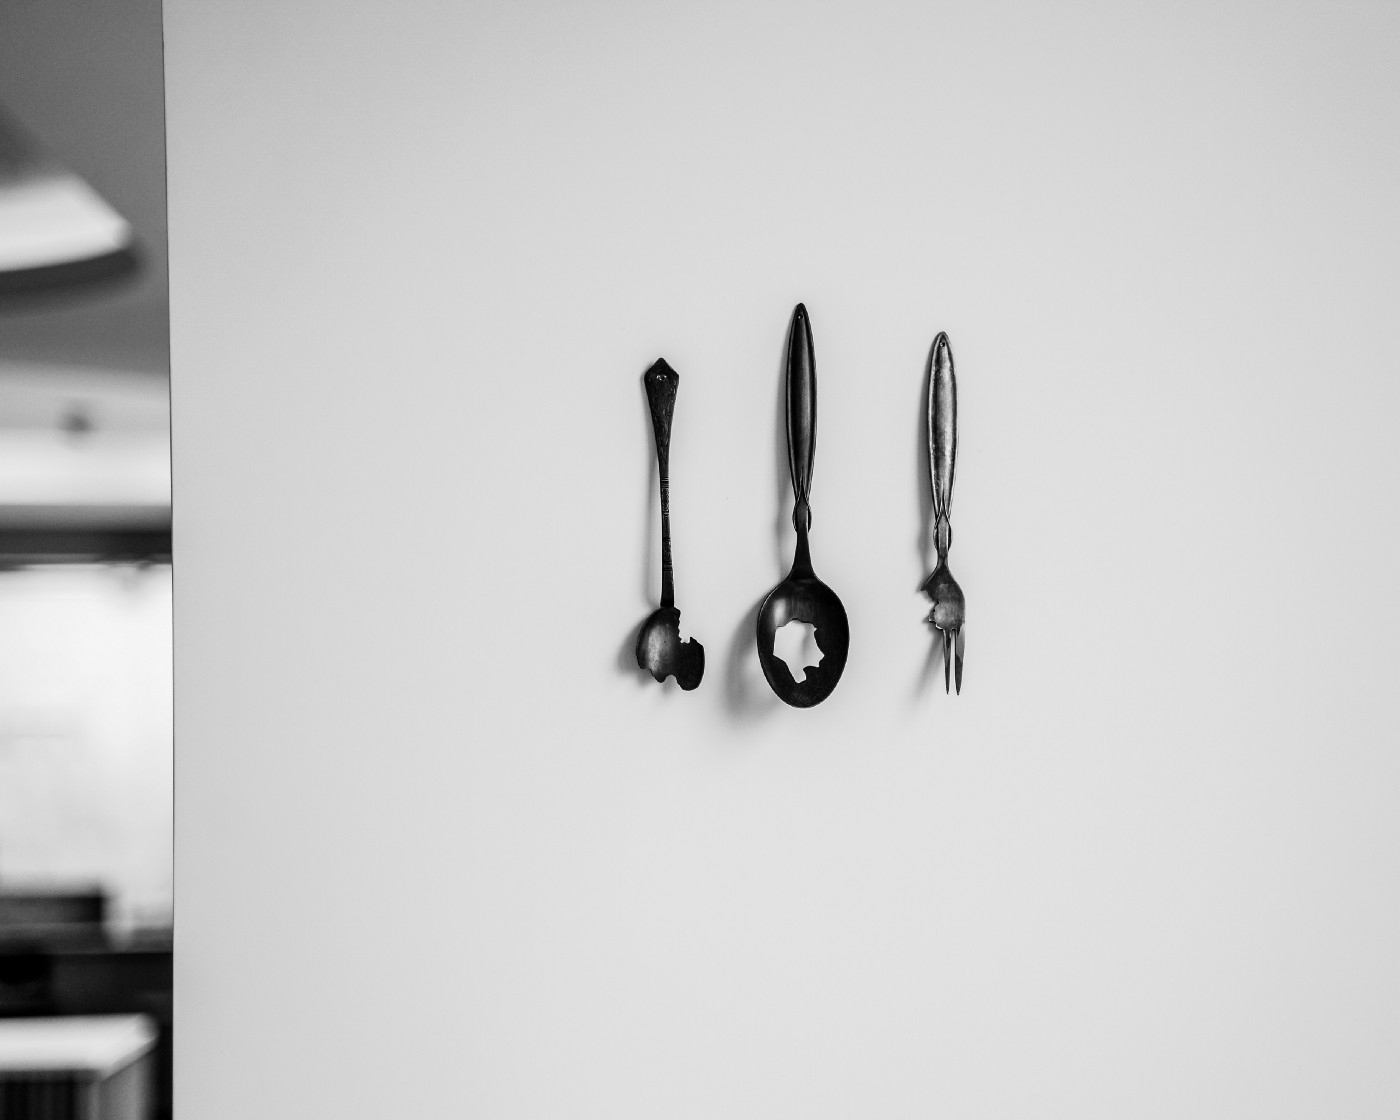 Restaurant kitchen crockery displayed on a white wall to represent hospitality in London. Photo by Food Story Media agency.